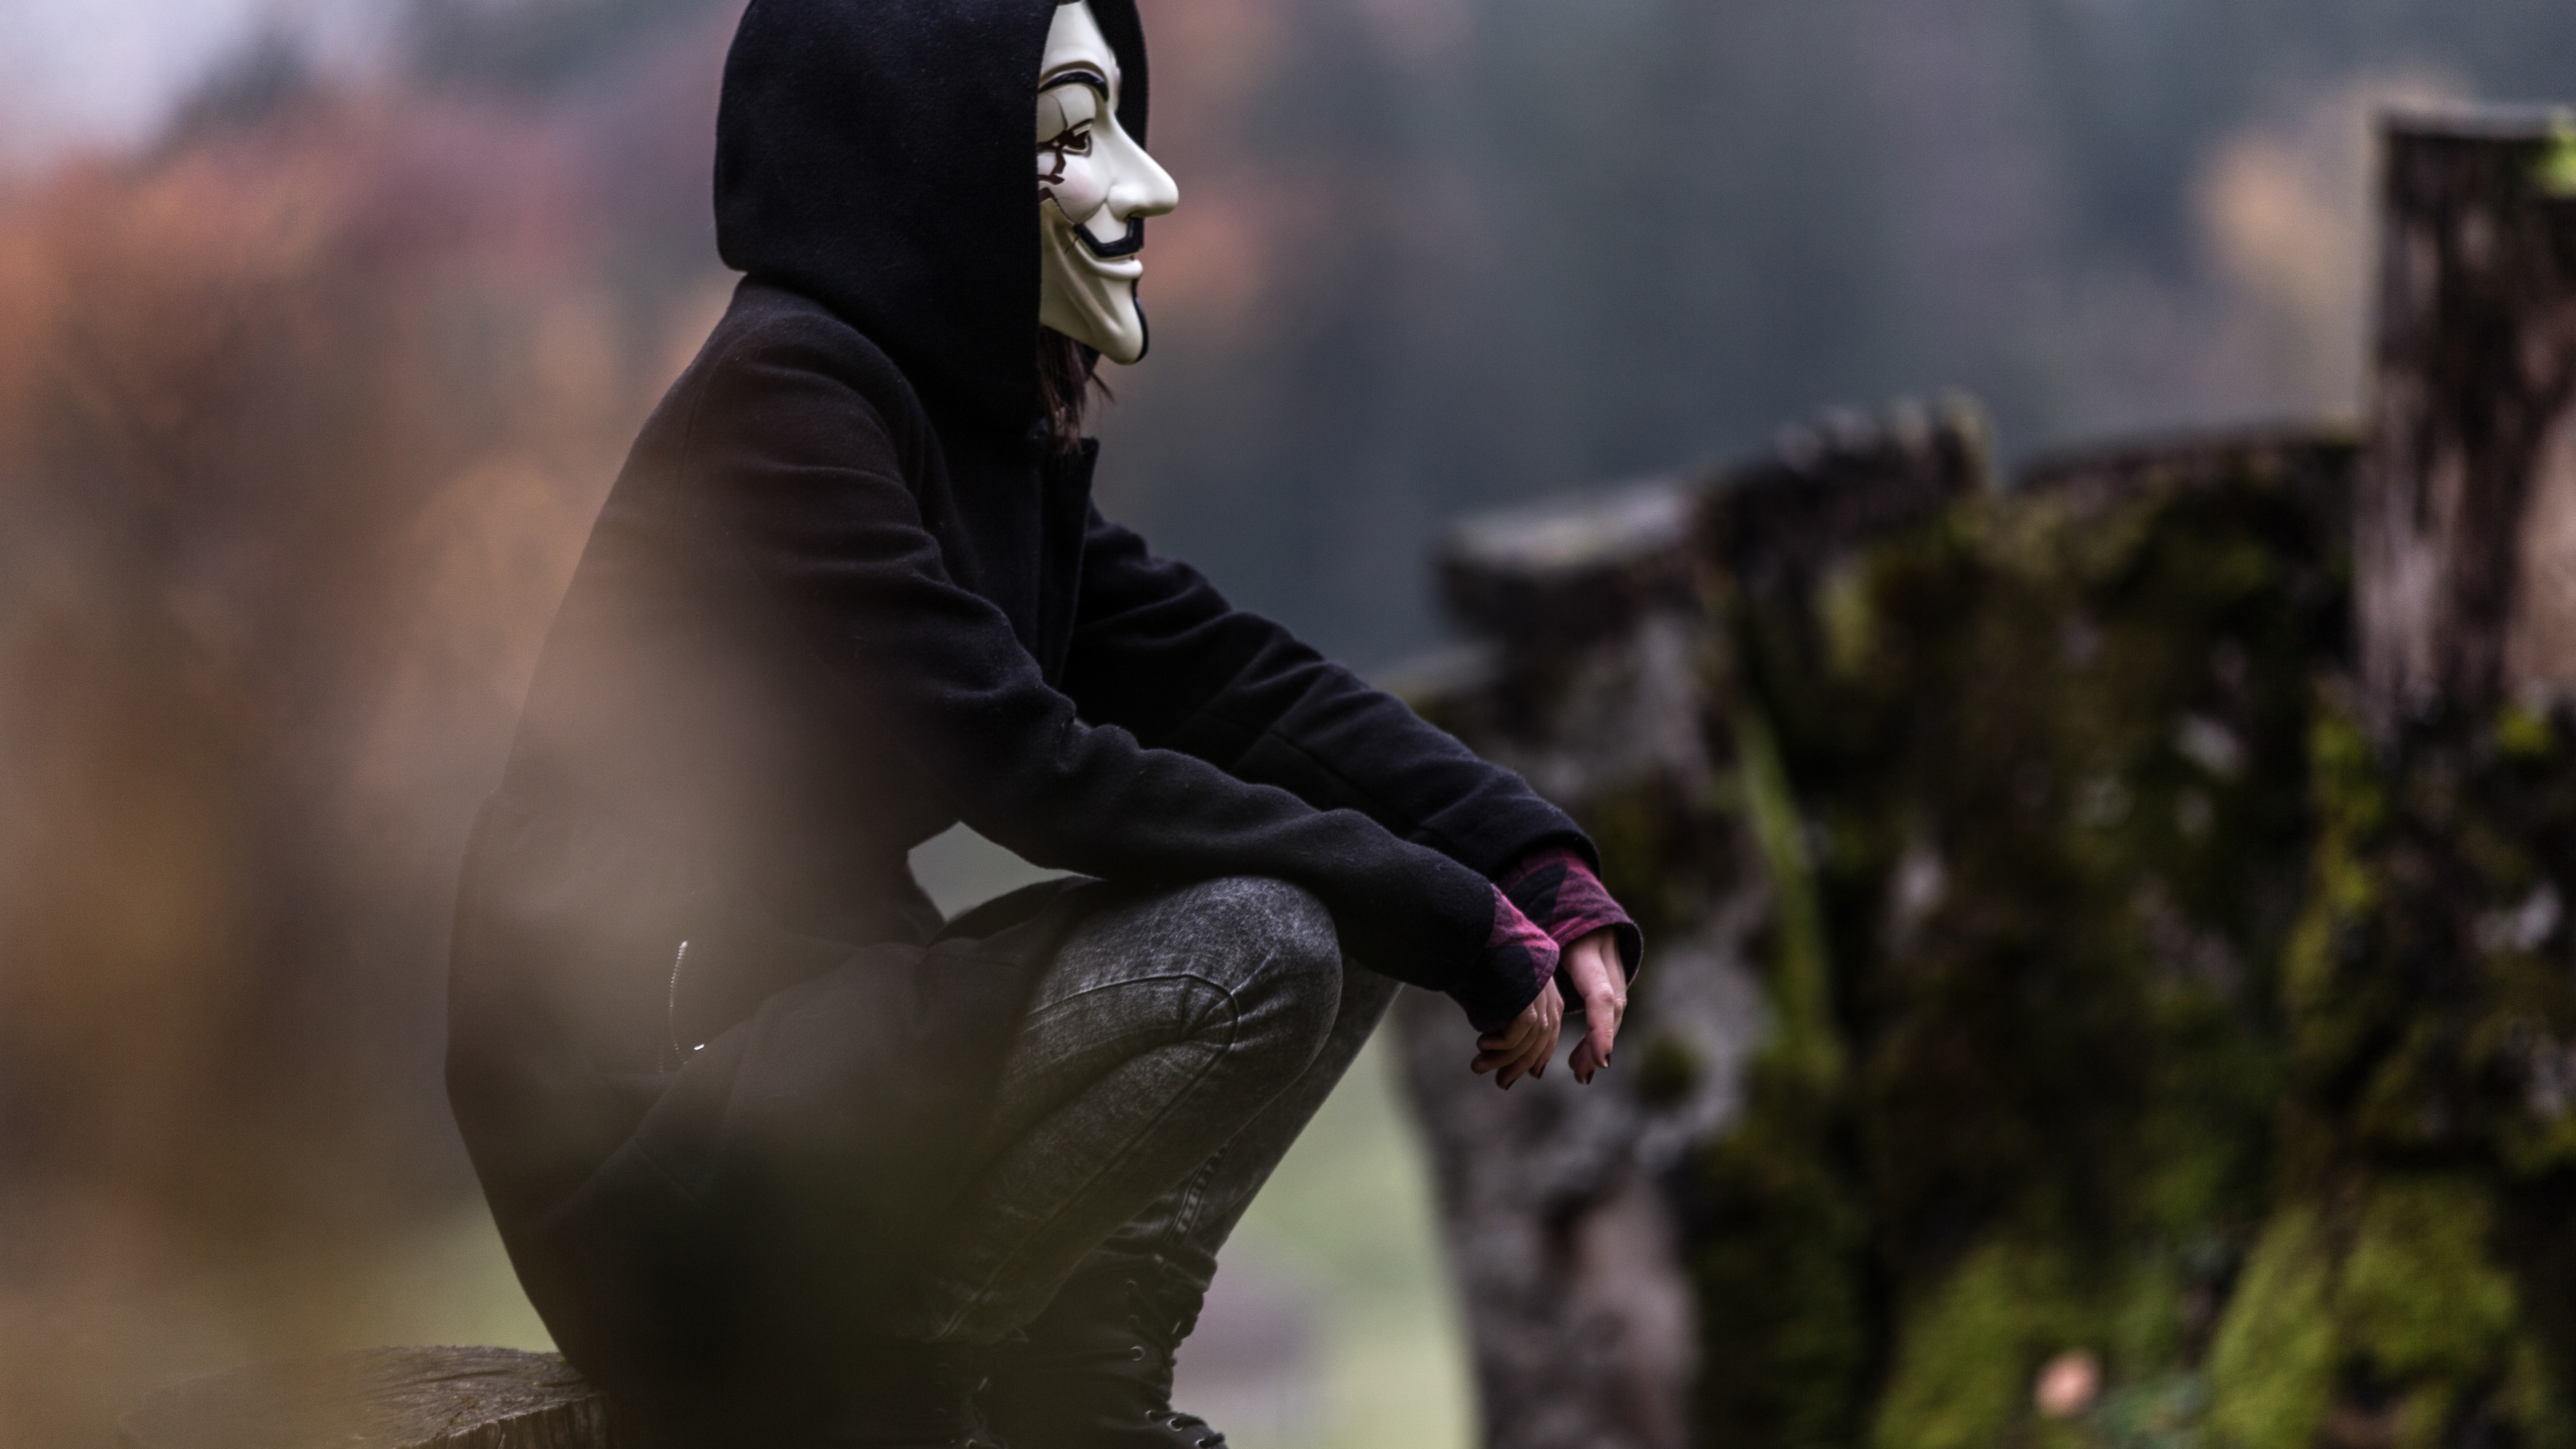 5120x2880 Anonymous Mask Guy 5k HD 4k Wallpapers, Images ...